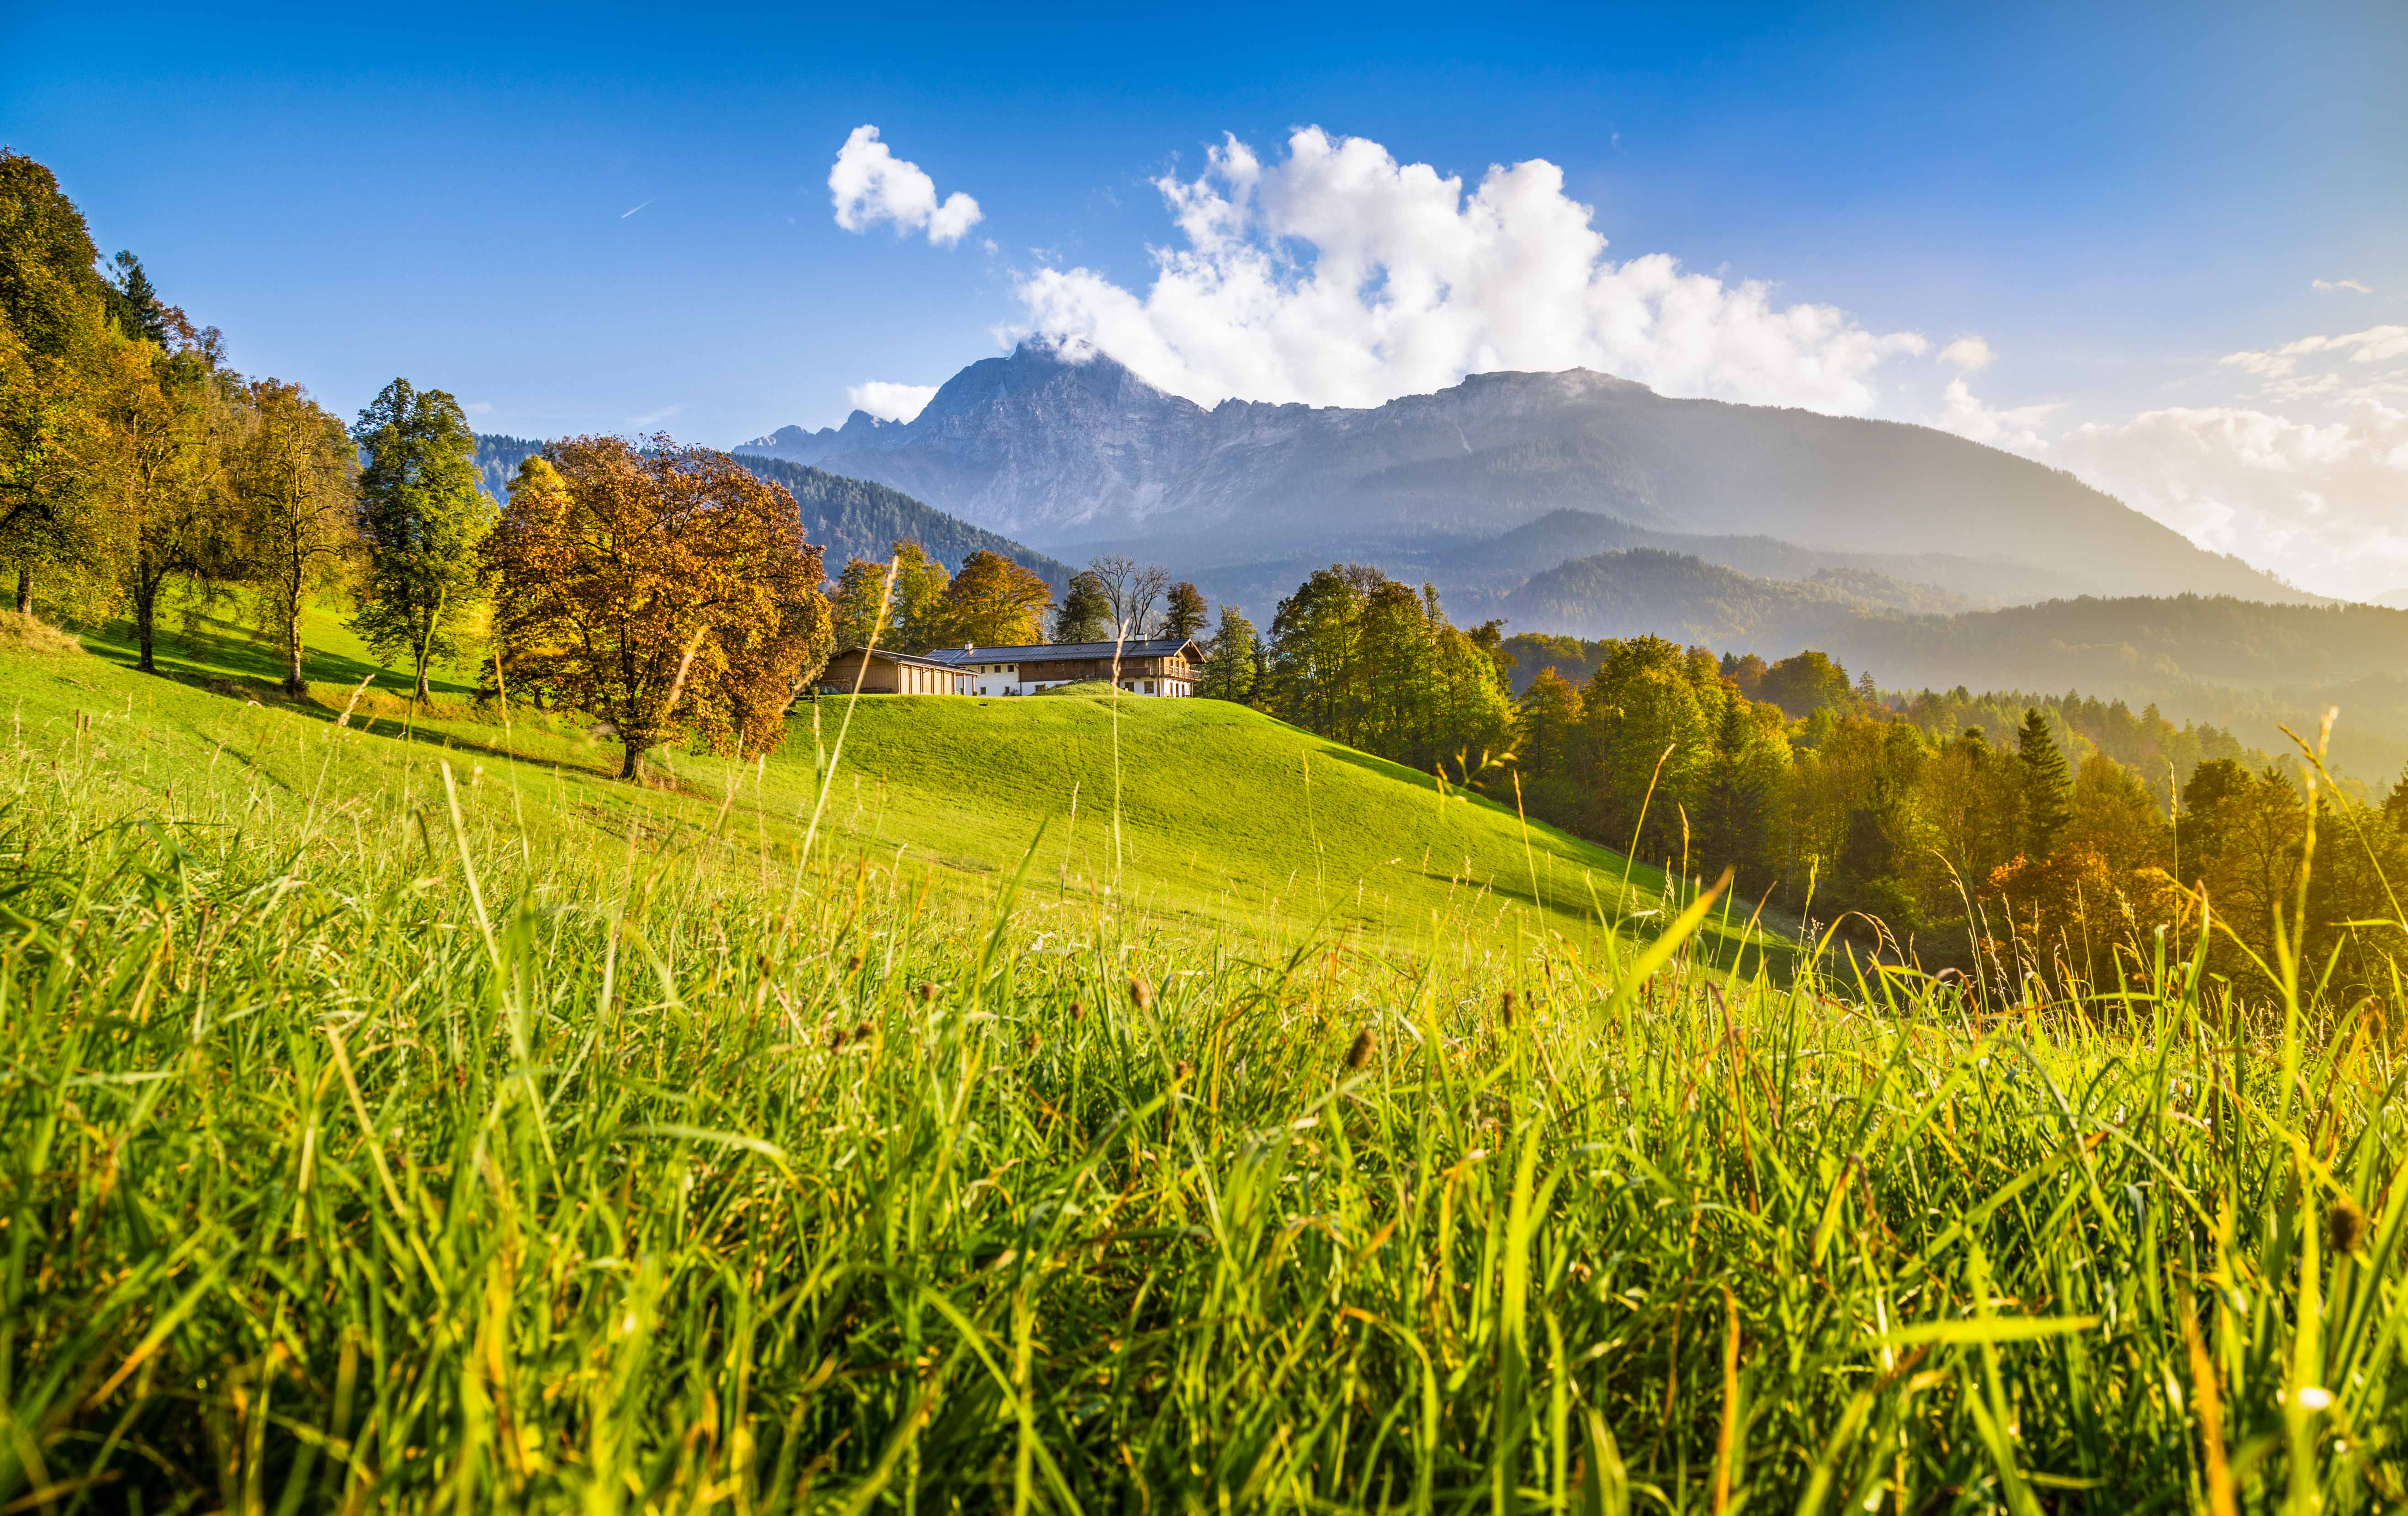 Mountain View - Three Suprising Mountain Towns to Visit This Summer